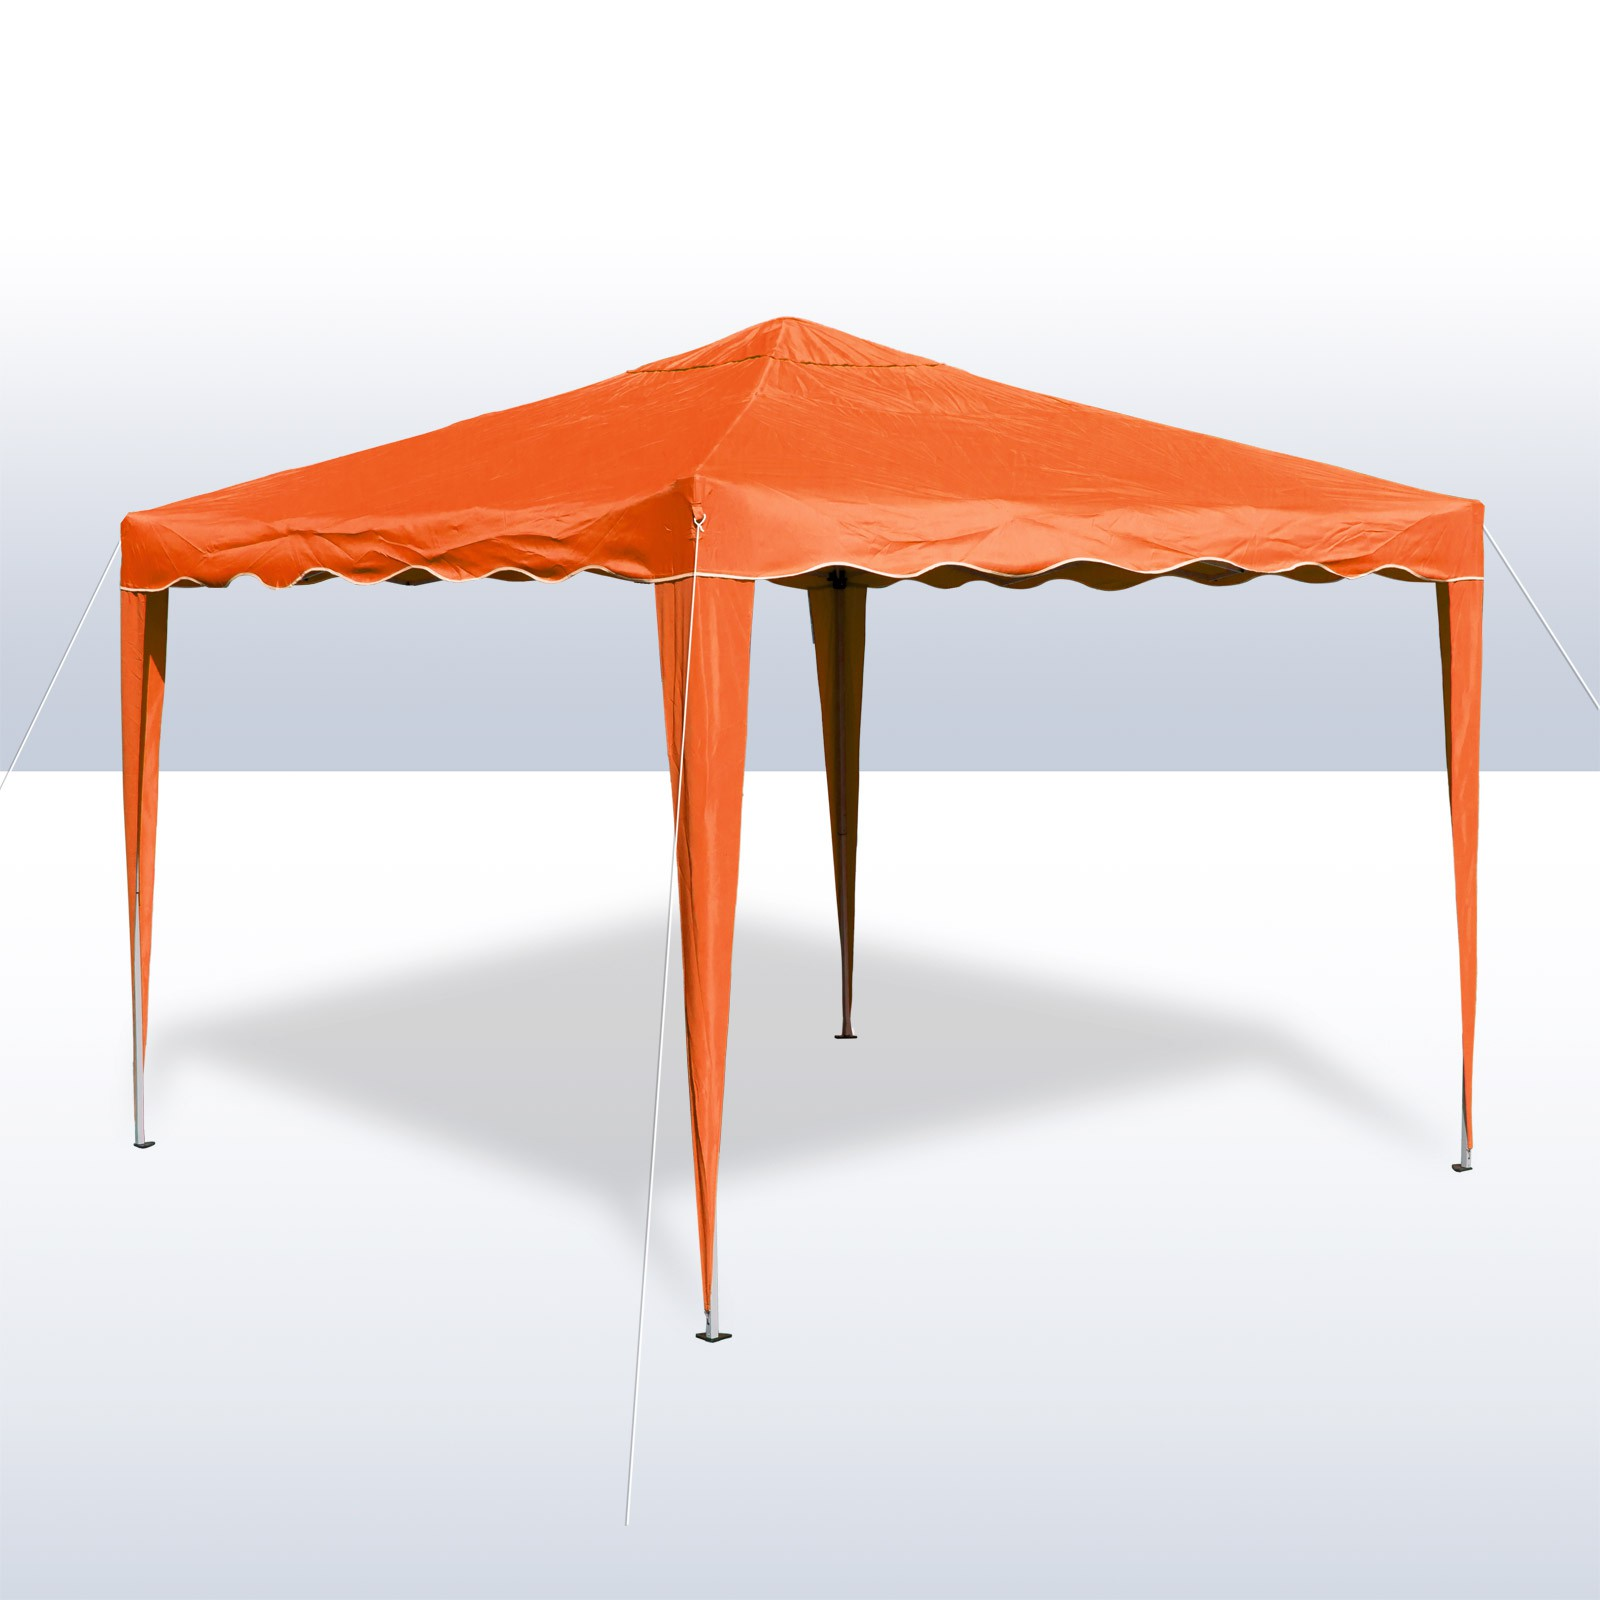 alu metall faltpavillon pavillon zelt gartenzelt sonnenschutz 3x3 meter orange. Black Bedroom Furniture Sets. Home Design Ideas